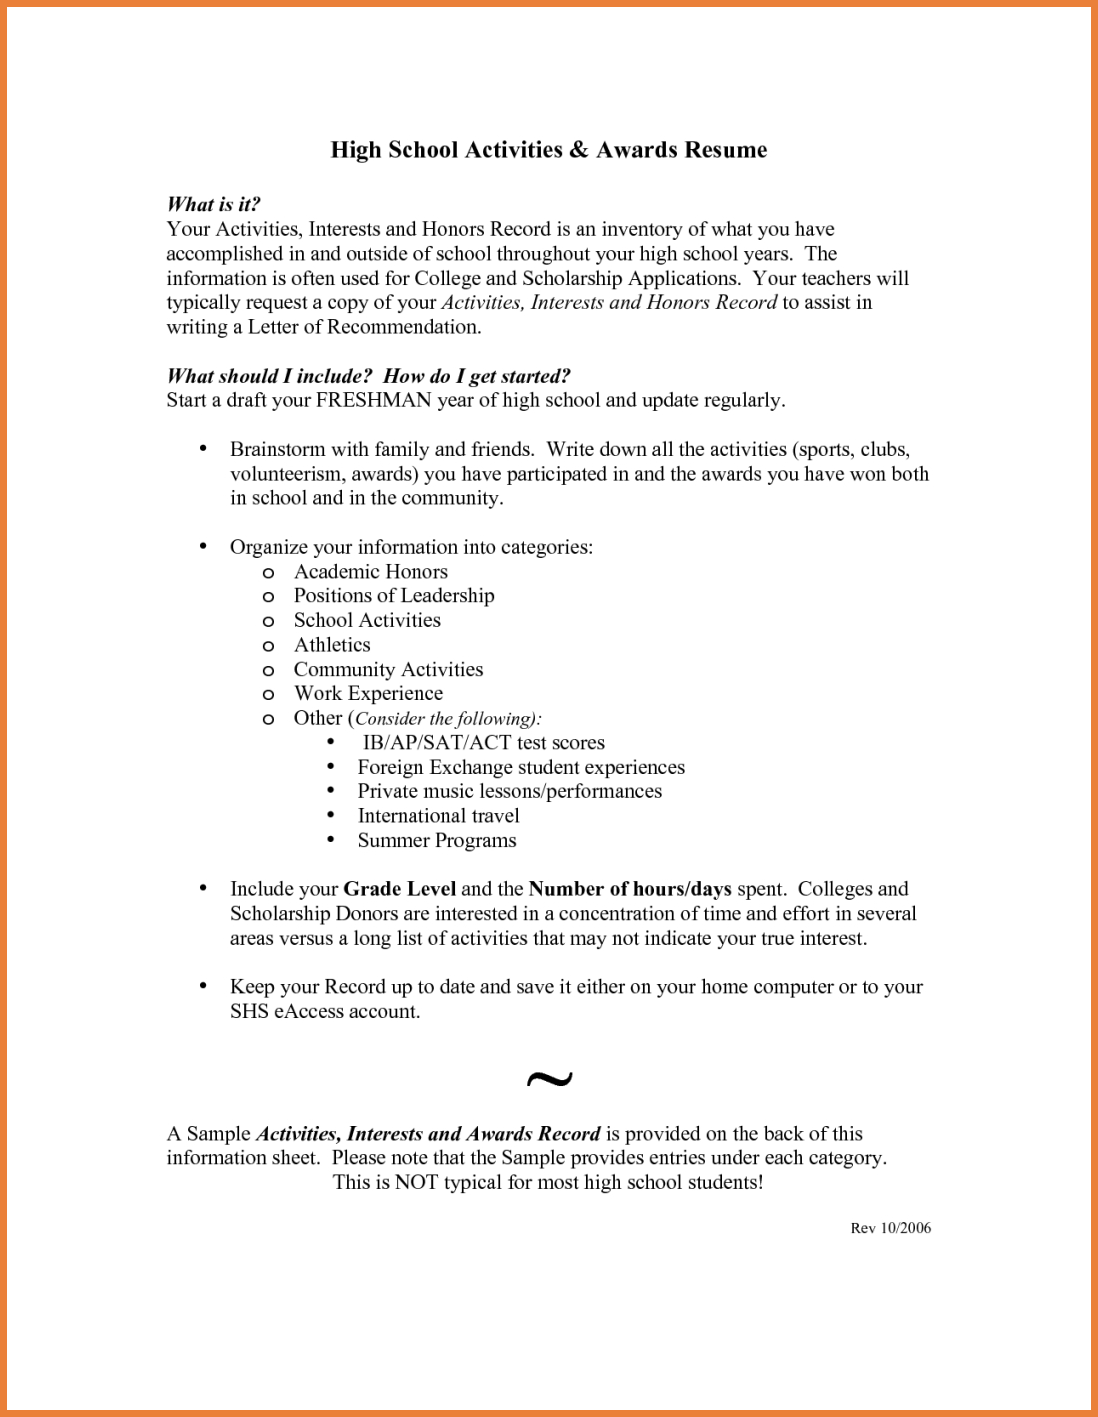 Sample High School Resume For College Application Ivr Tester Cover